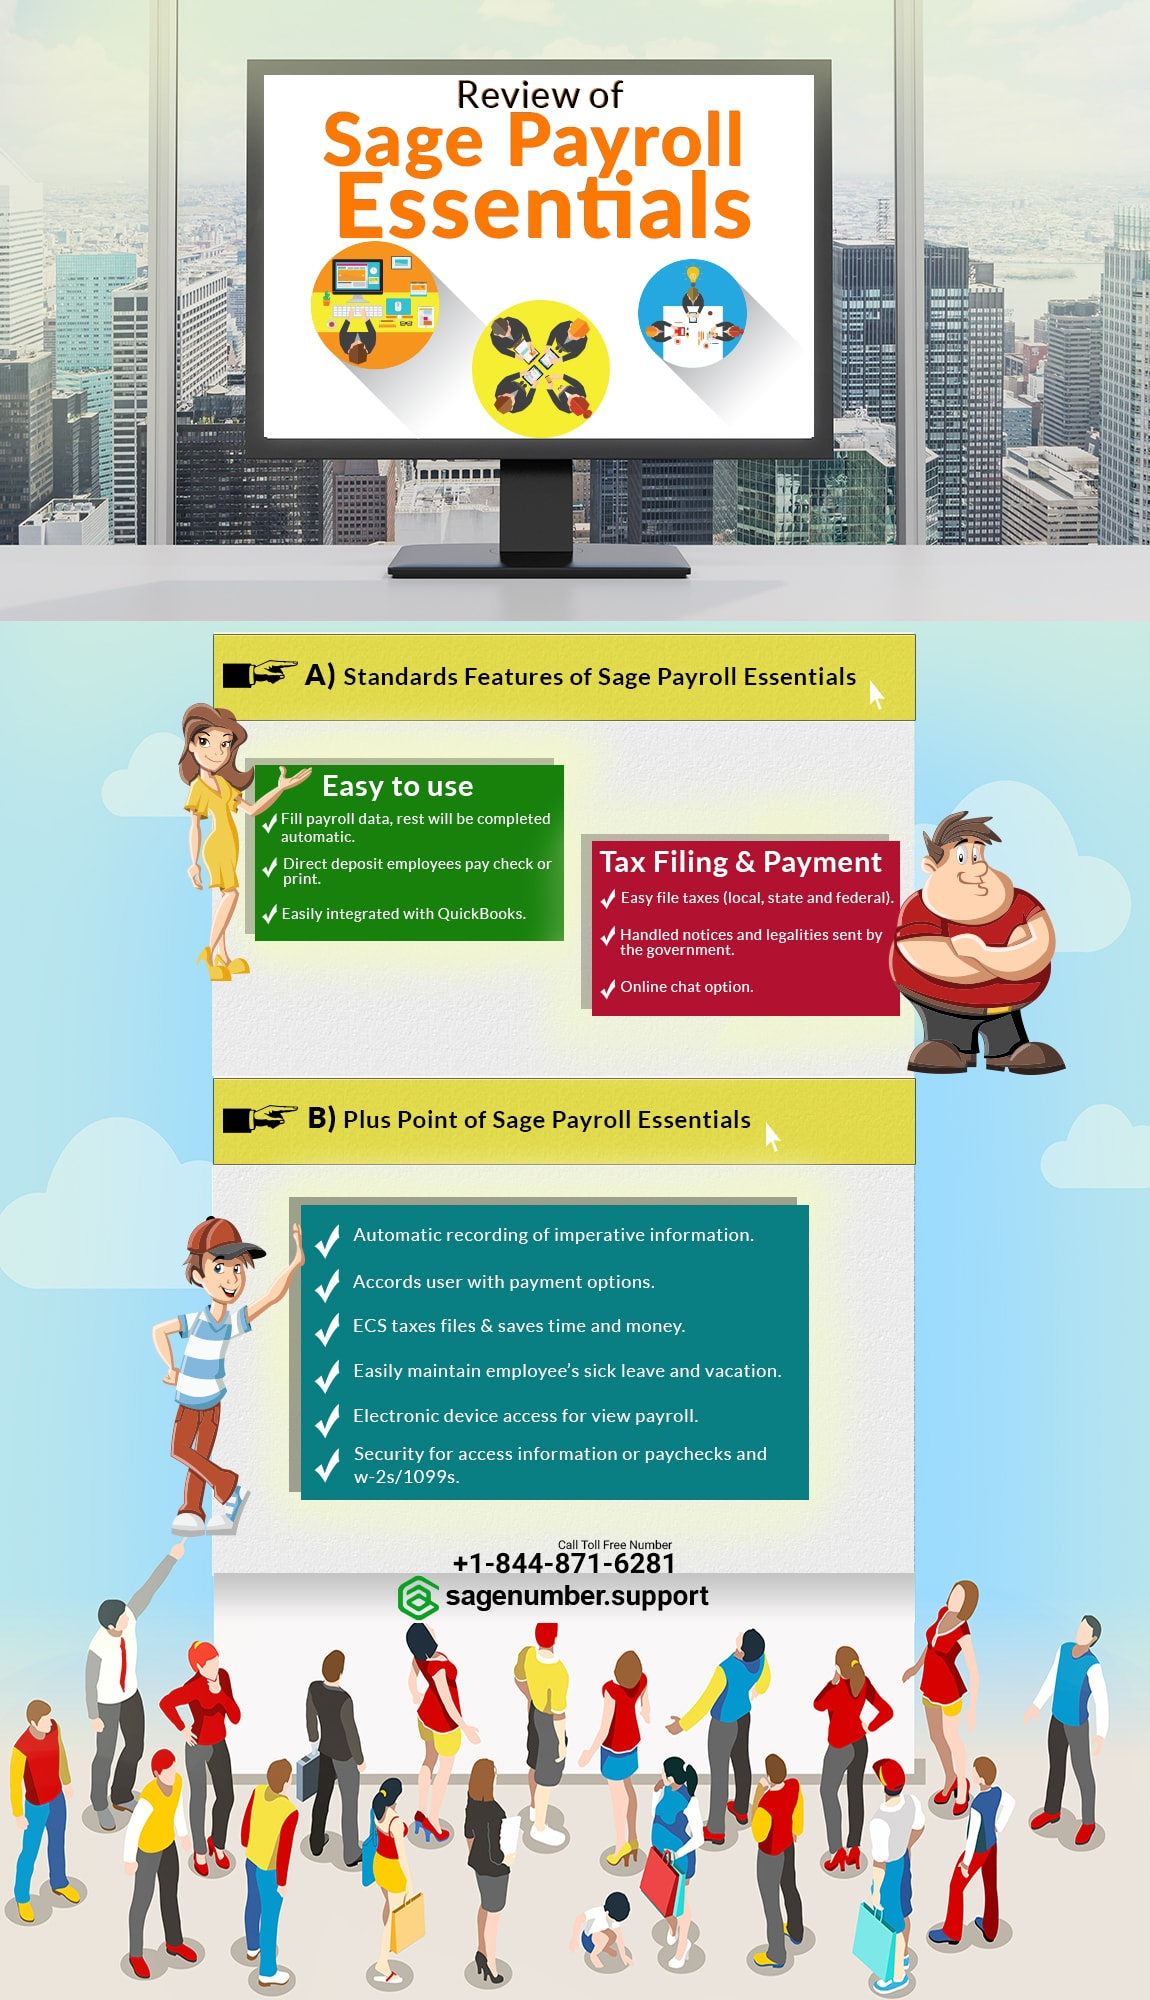 infographic-review-of-sage-payroll-essentials